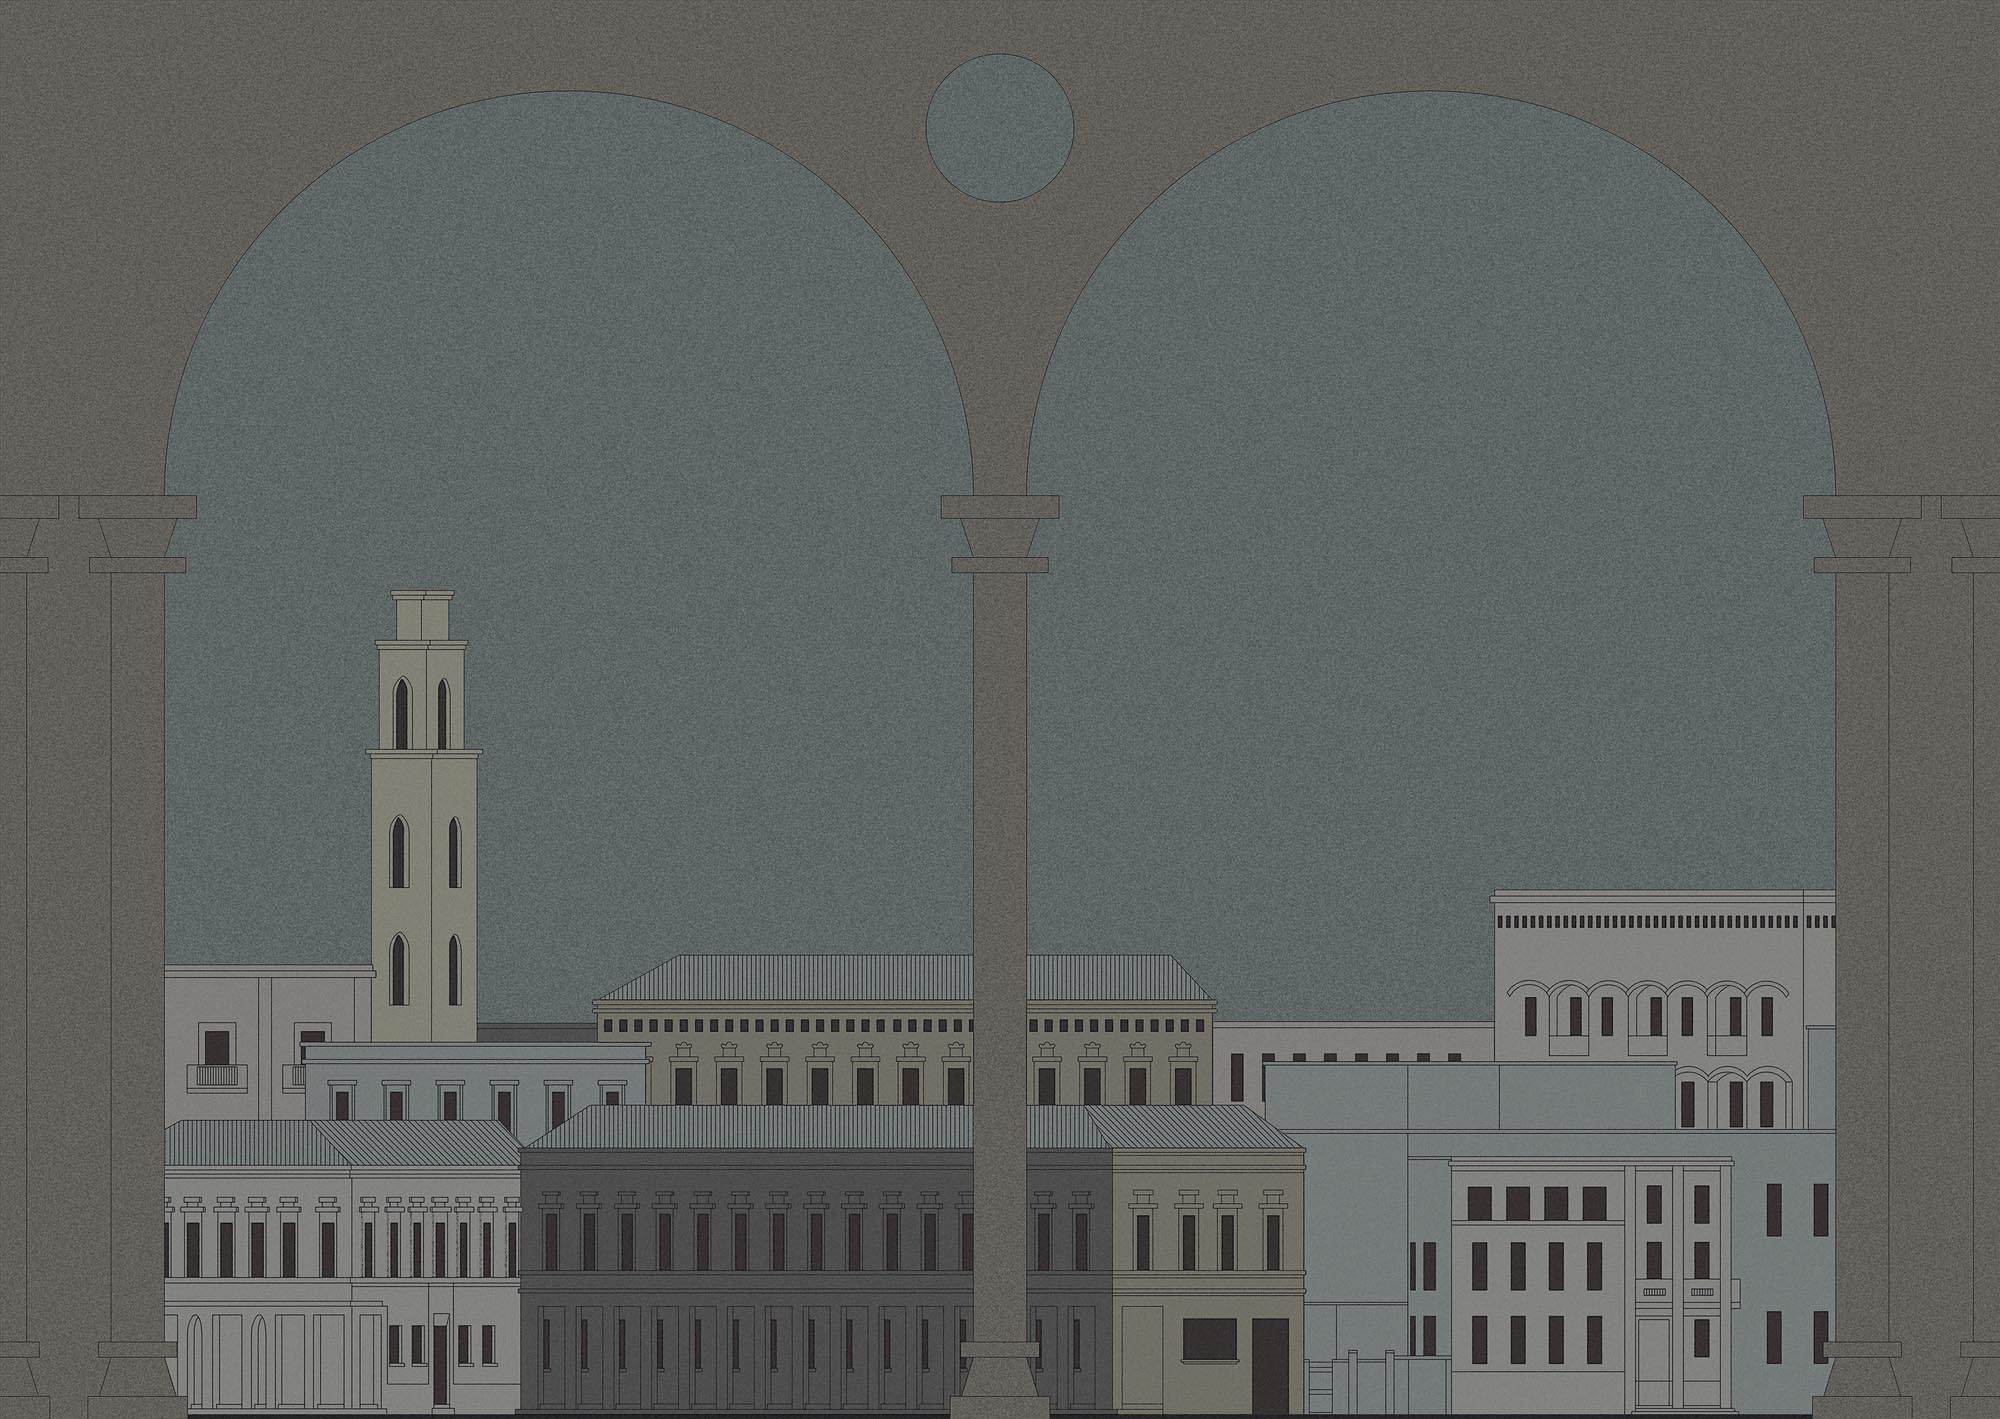 """Città ideale - Metaphysical atmosphere, soft colors, elegant lines. Personal interpretation of the Renaissance studies conducted on the geometric construction of the utopian cities, """"The ideal cities"""" project deliberately renounces to using the perspective and the illusional third dimension, to commit to the two-dimension structure typical of the Byzantine and pre-Giotto paintings. The result is a domestic fresco of a nearly suspended urban landscape. 